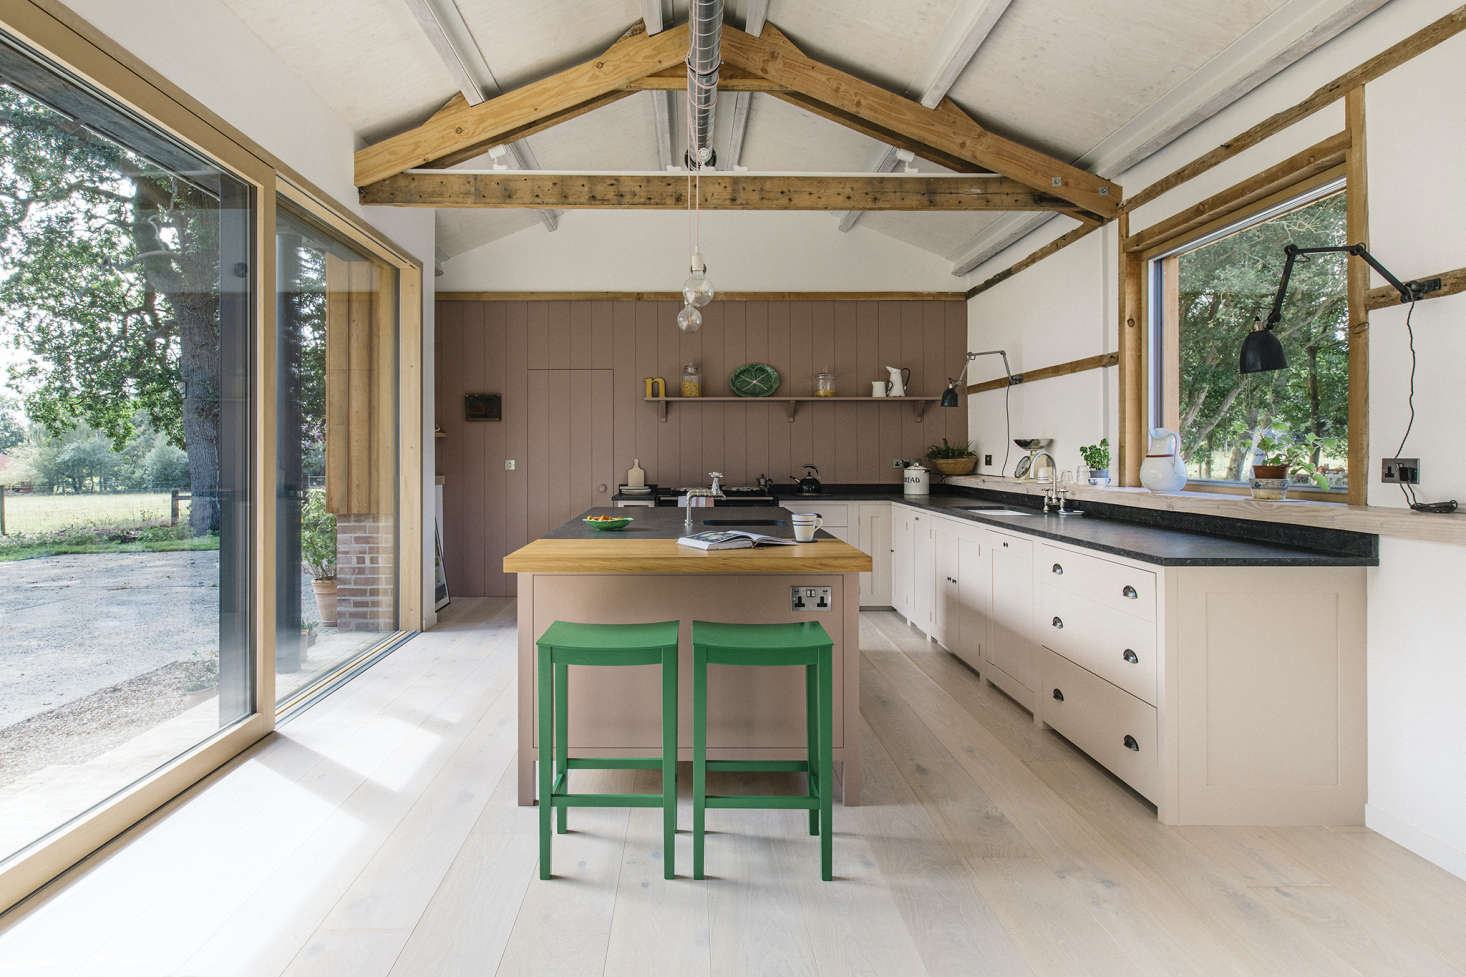 A sophisticated take on the classic pink and green pairing. See Kitchen of the Week: Calamine Pinks in a Converted Barn Kitchen by Plain English. Photograph courtesy of Plain English.